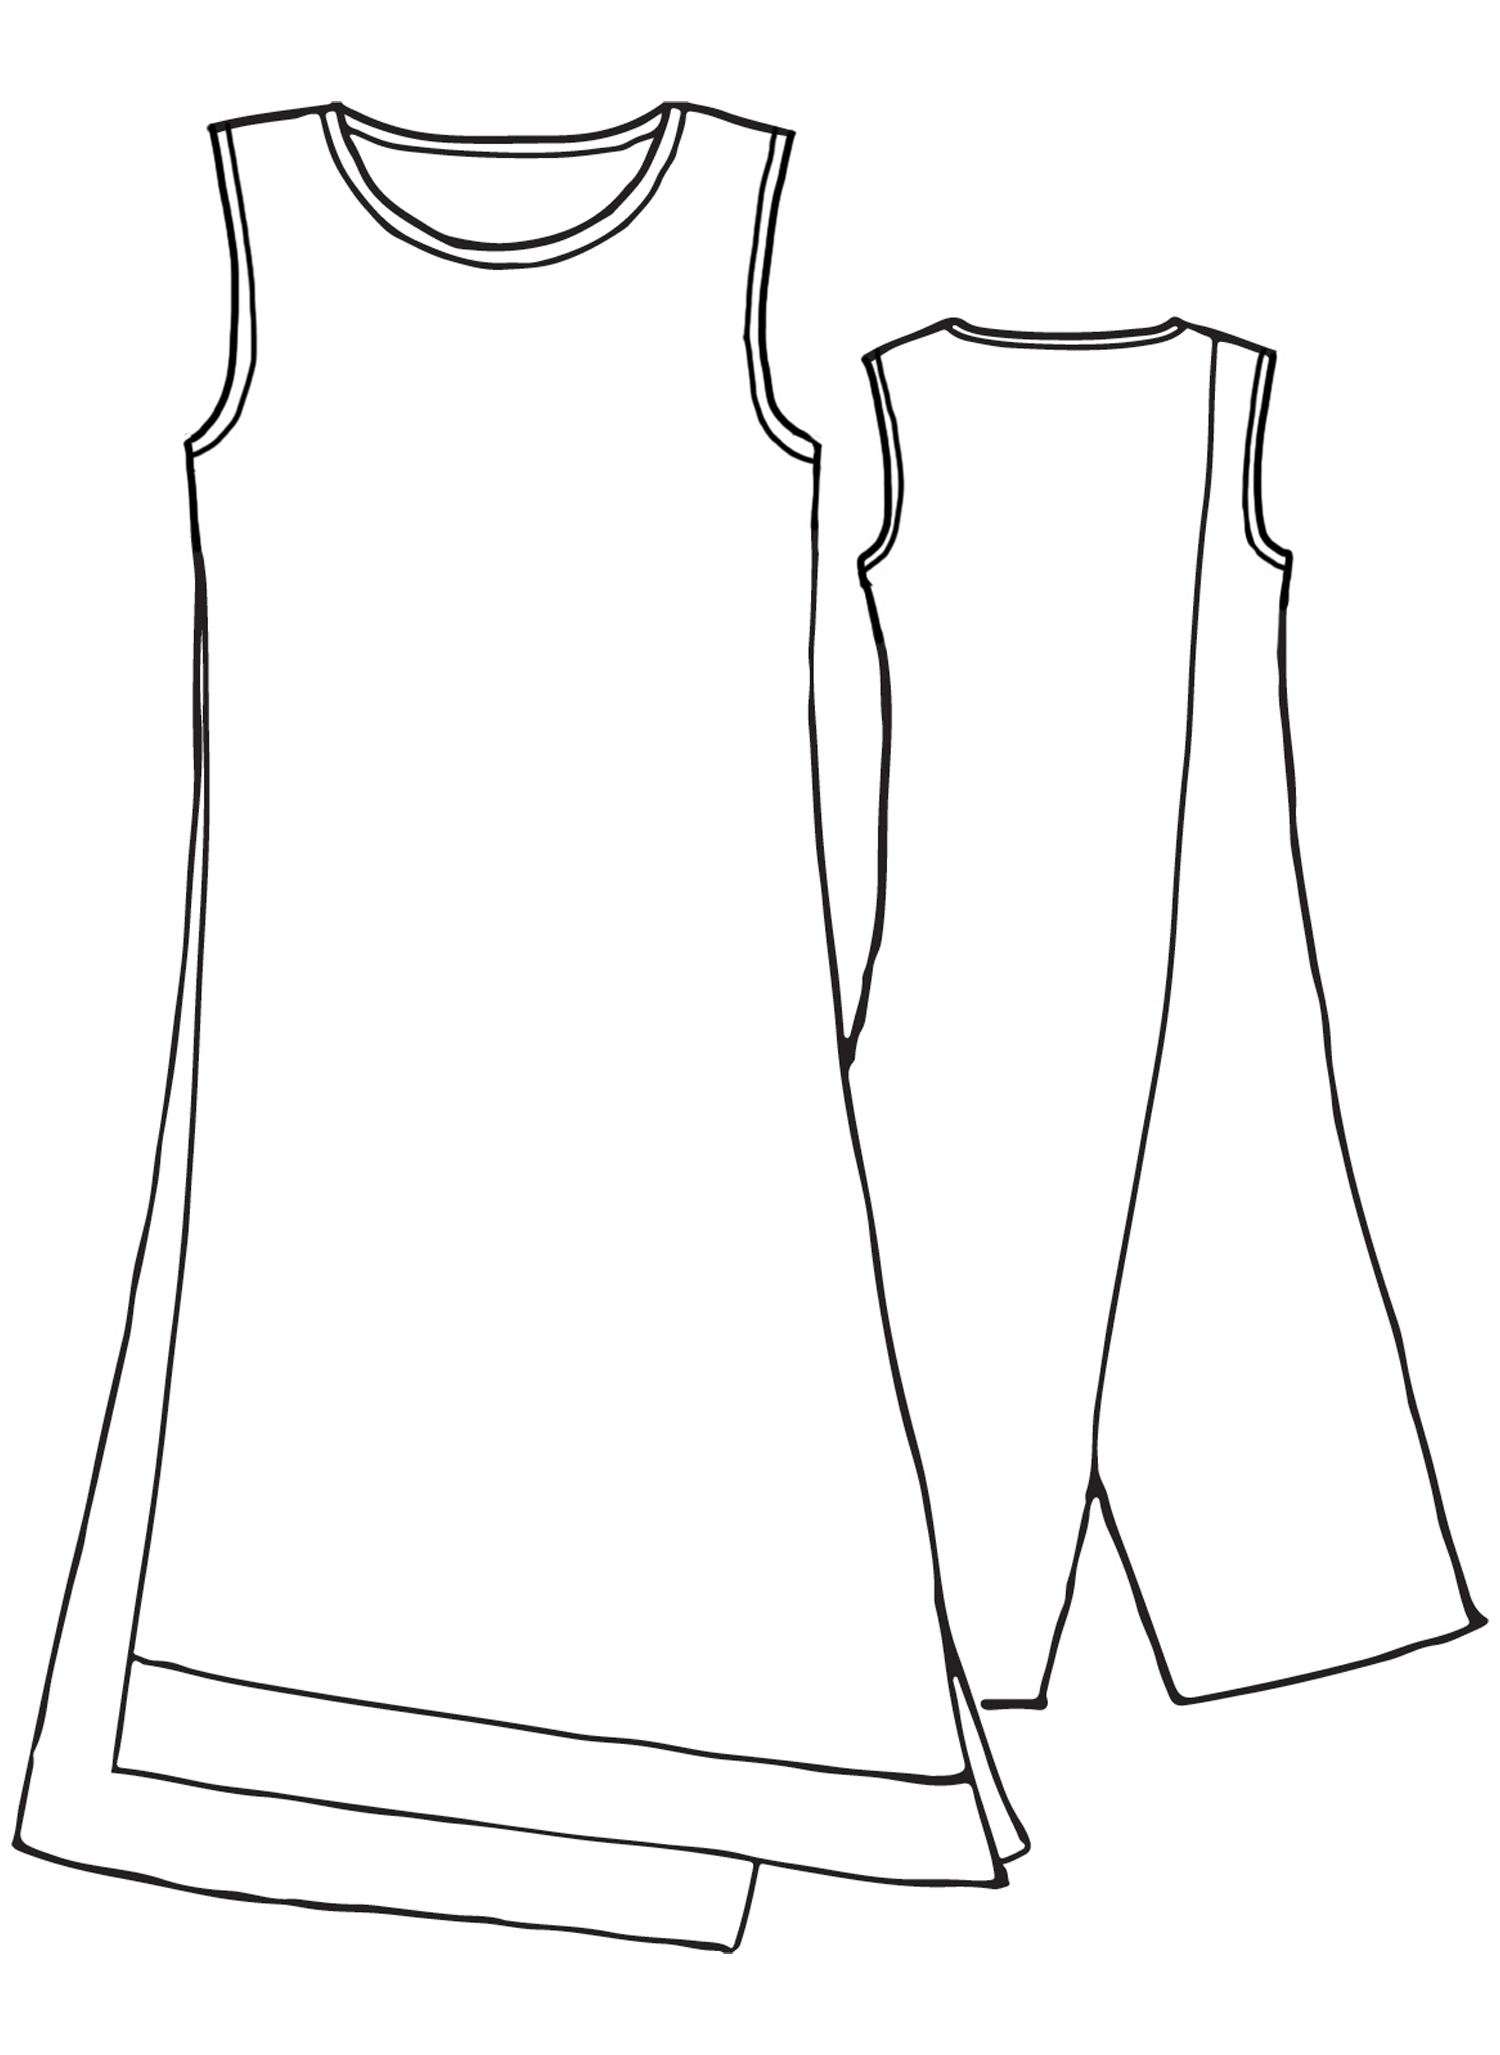 Vancouver Dress sketch image